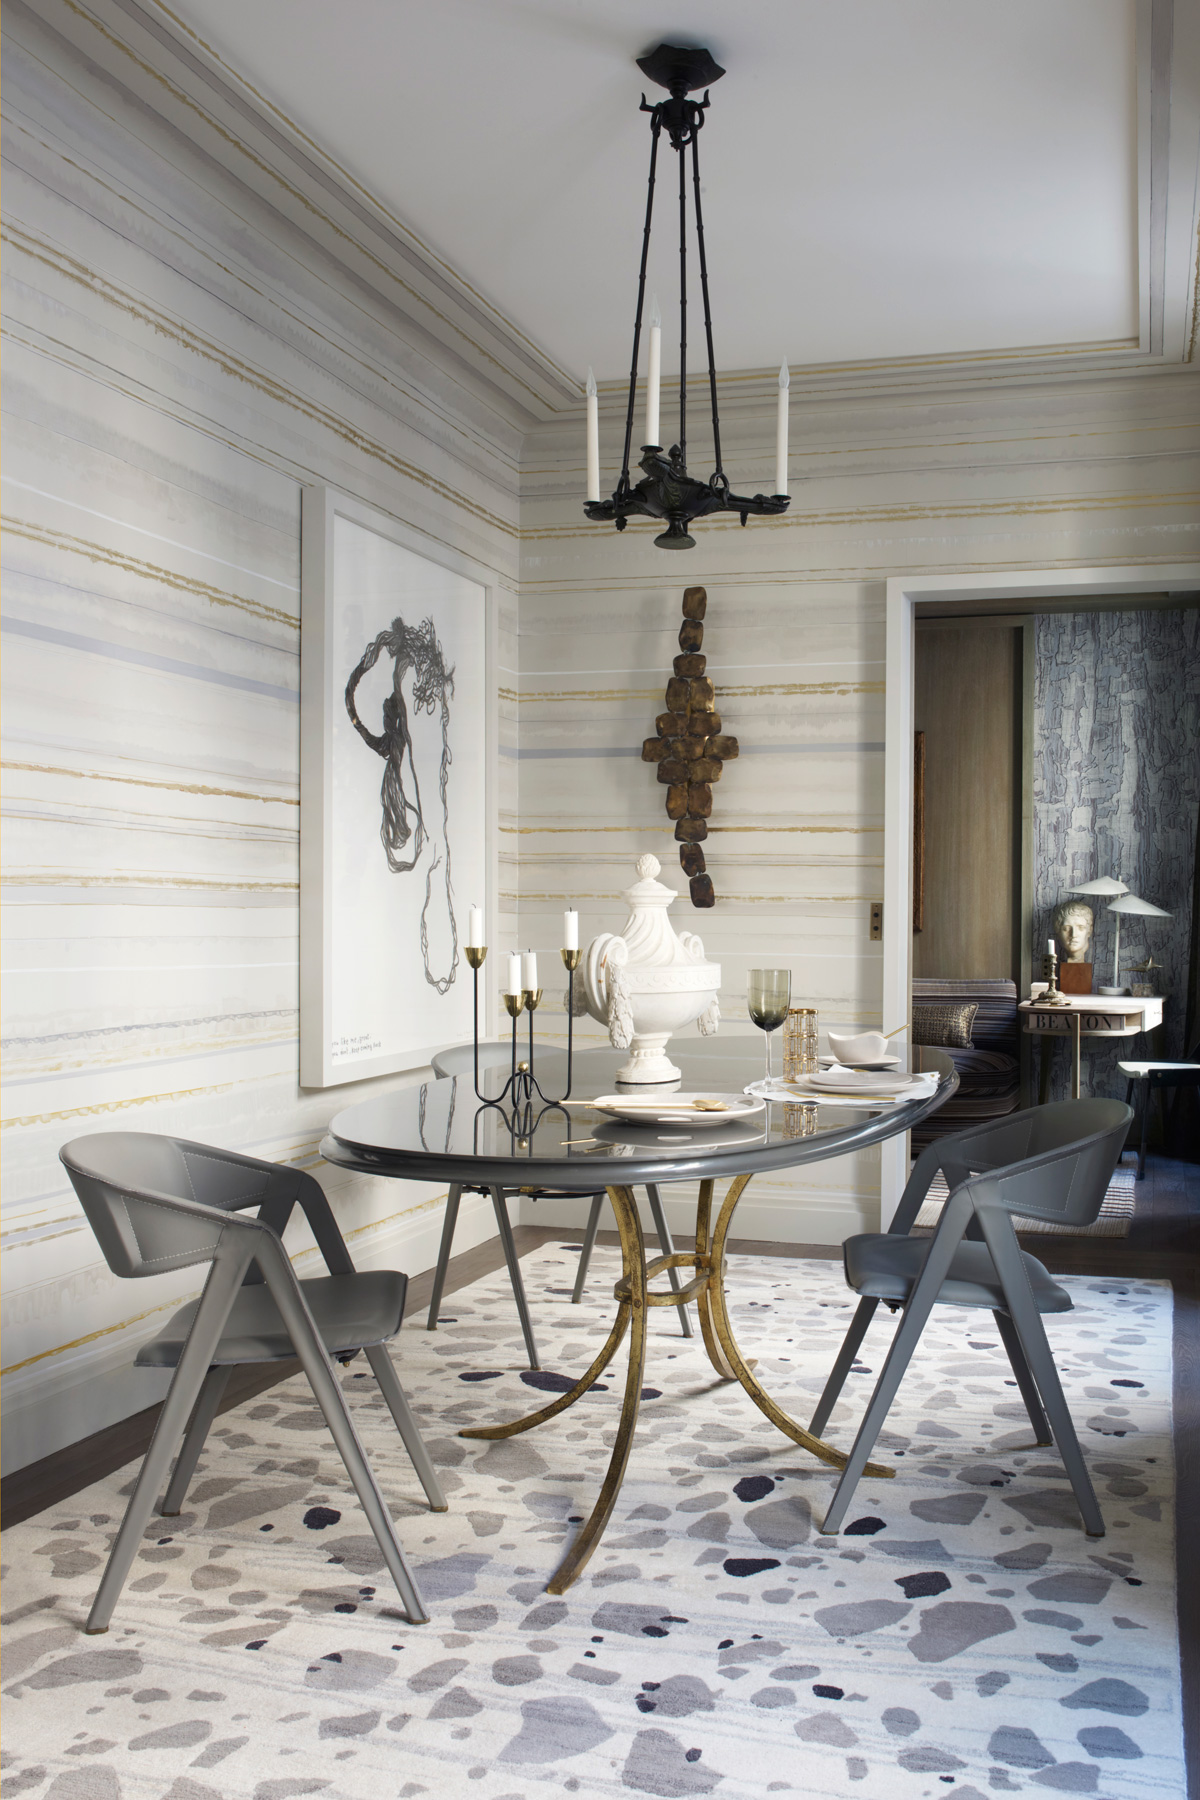 10 of the best dining room tables for your home best dining room tables 10 of the best dining room tables for your home 1436466113 edc090112deniot09